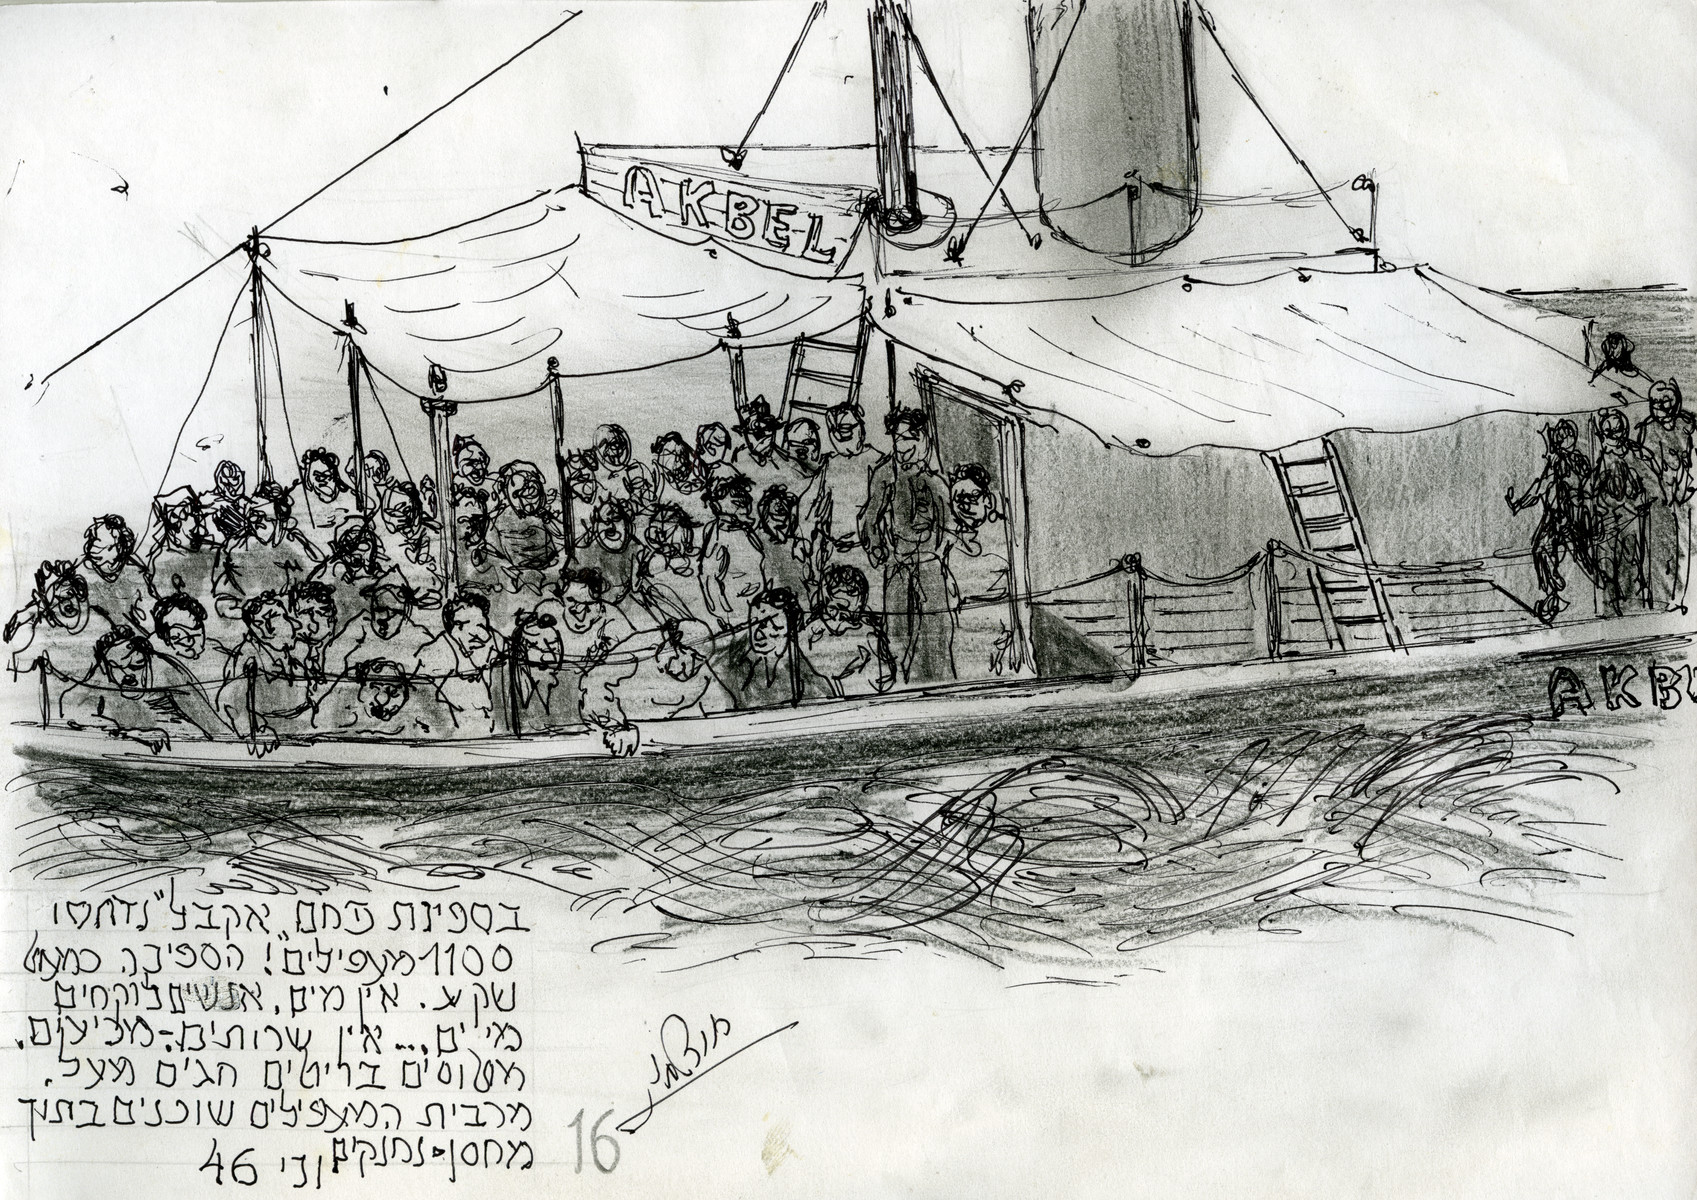 Page of a pictoral memoir drawn by the donor documenting his experiences after the Holocaust.  The drawing depicts passengers, who had previously been passengers on the Biriya, on the over-crowded vessel Akbel . The Akbel had difficulty accommodating all the passengers and almost sank.